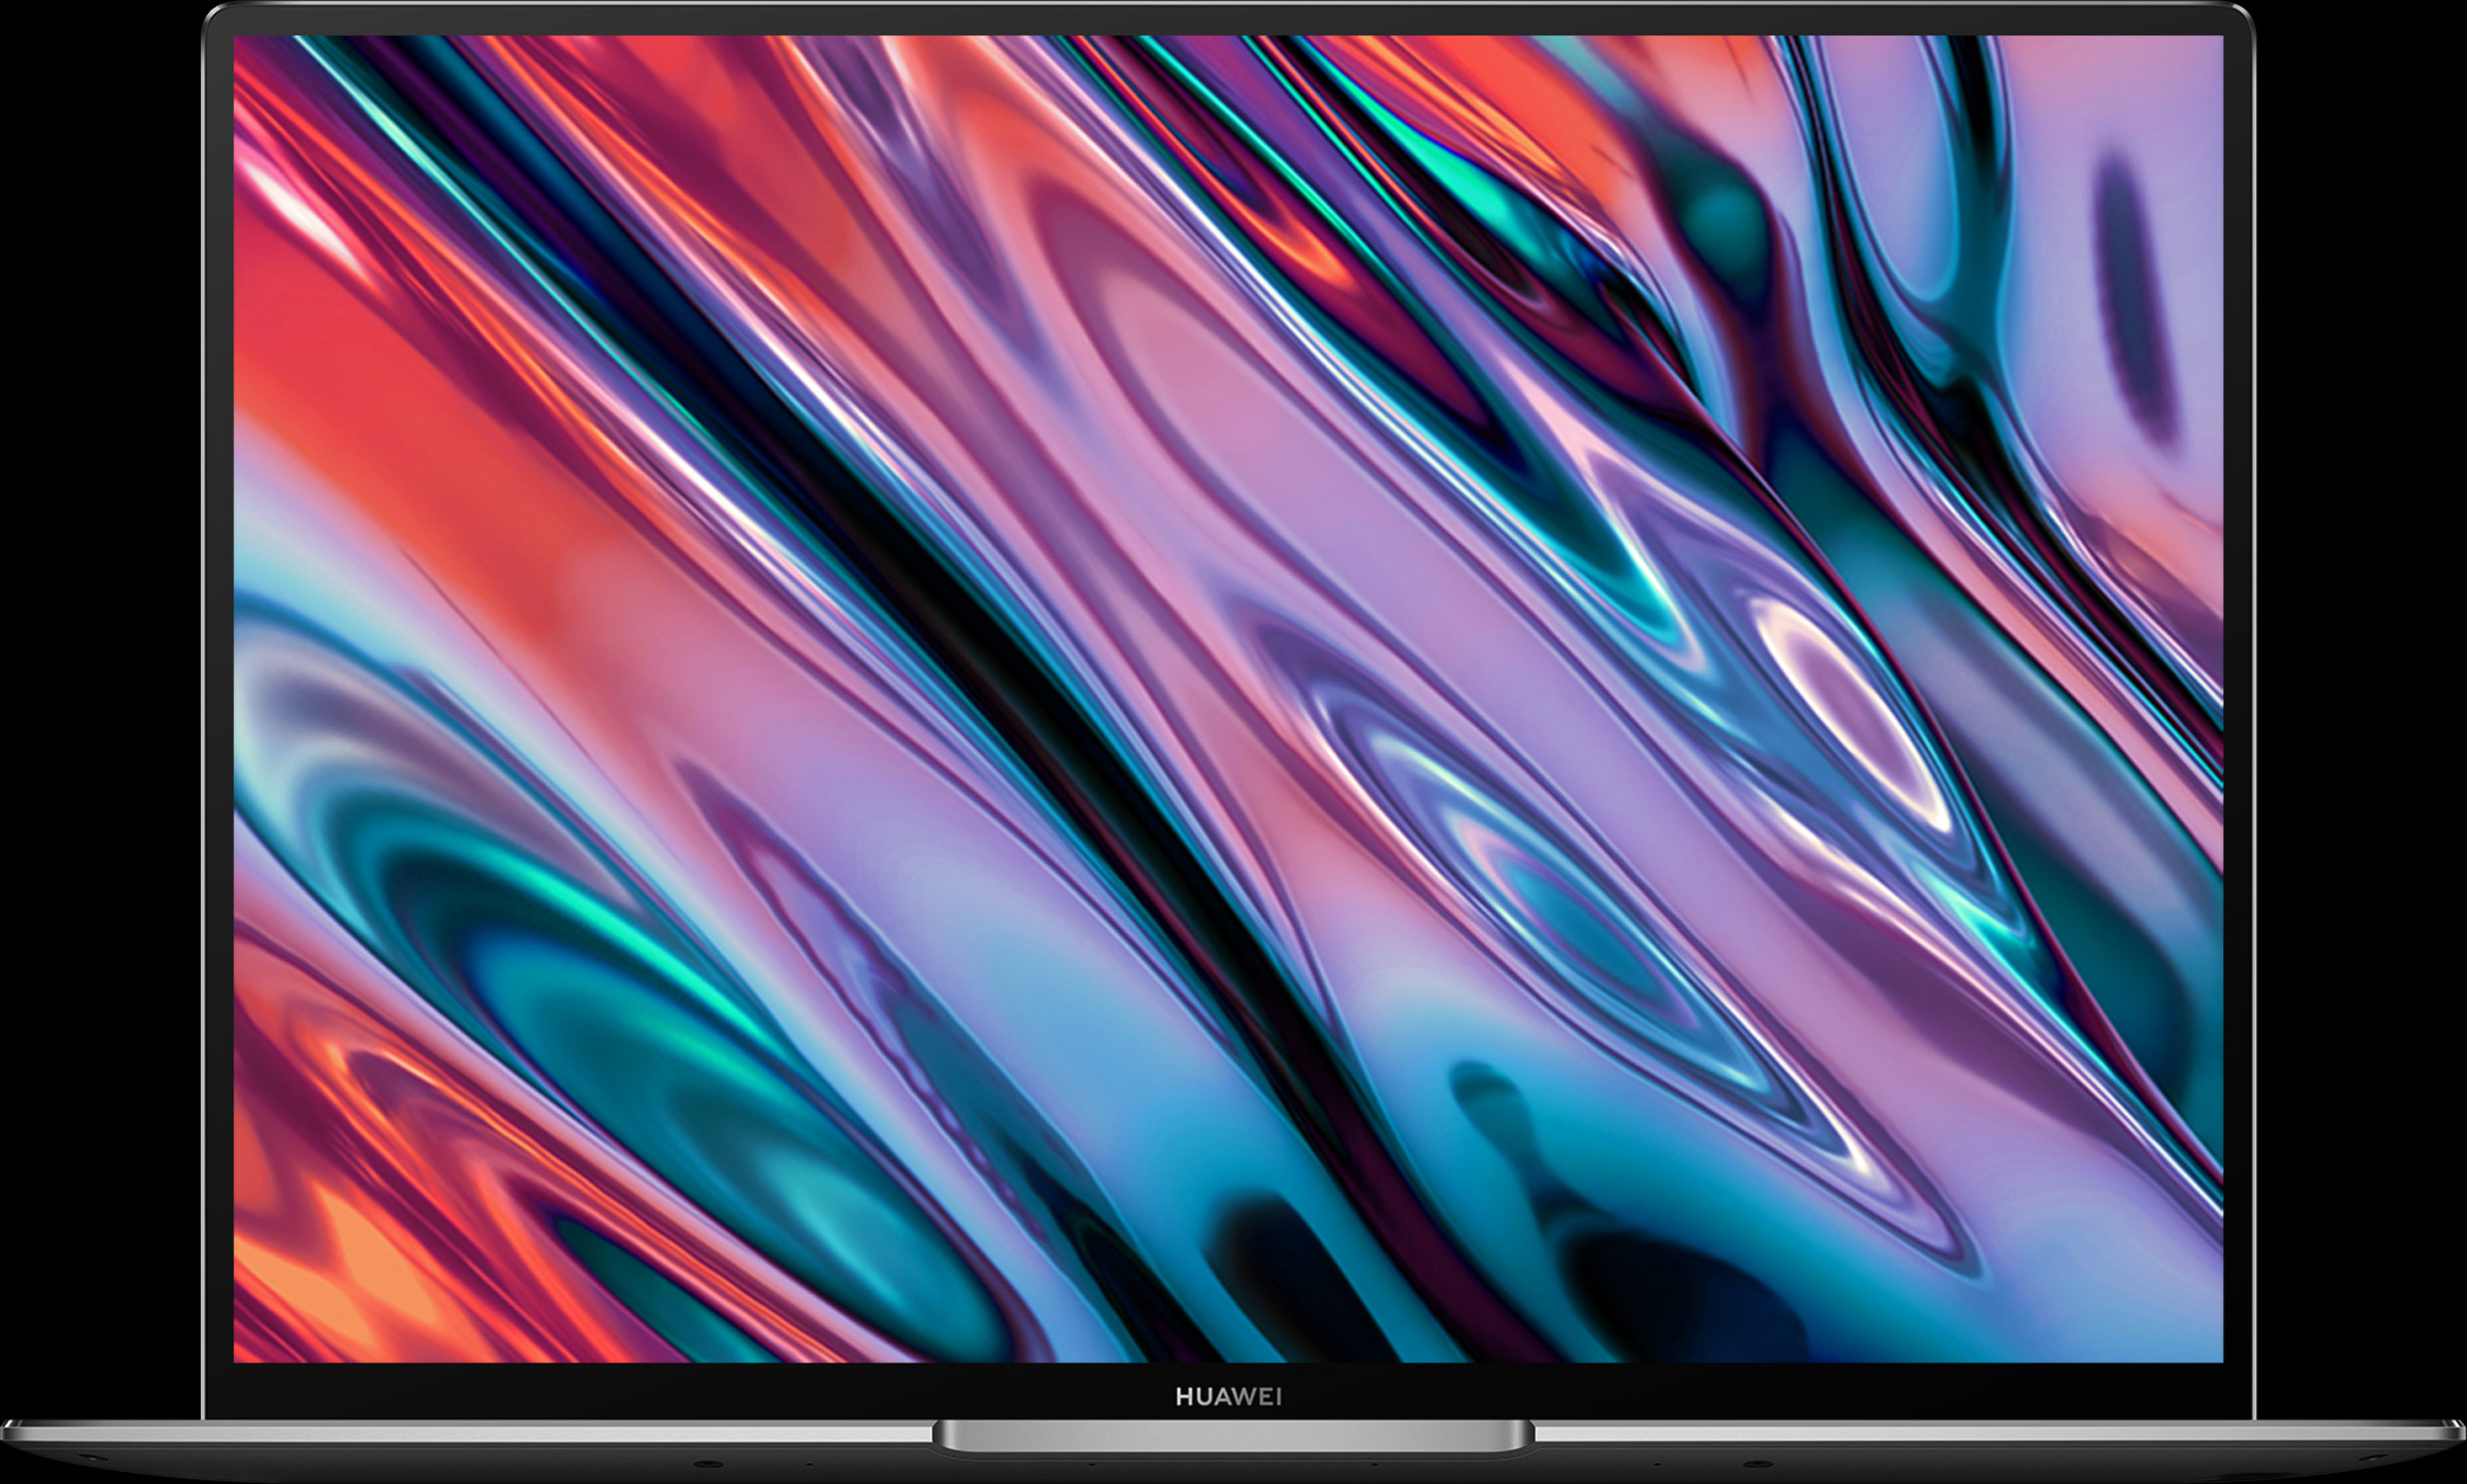 huawei matebook x pro-3k fullview display